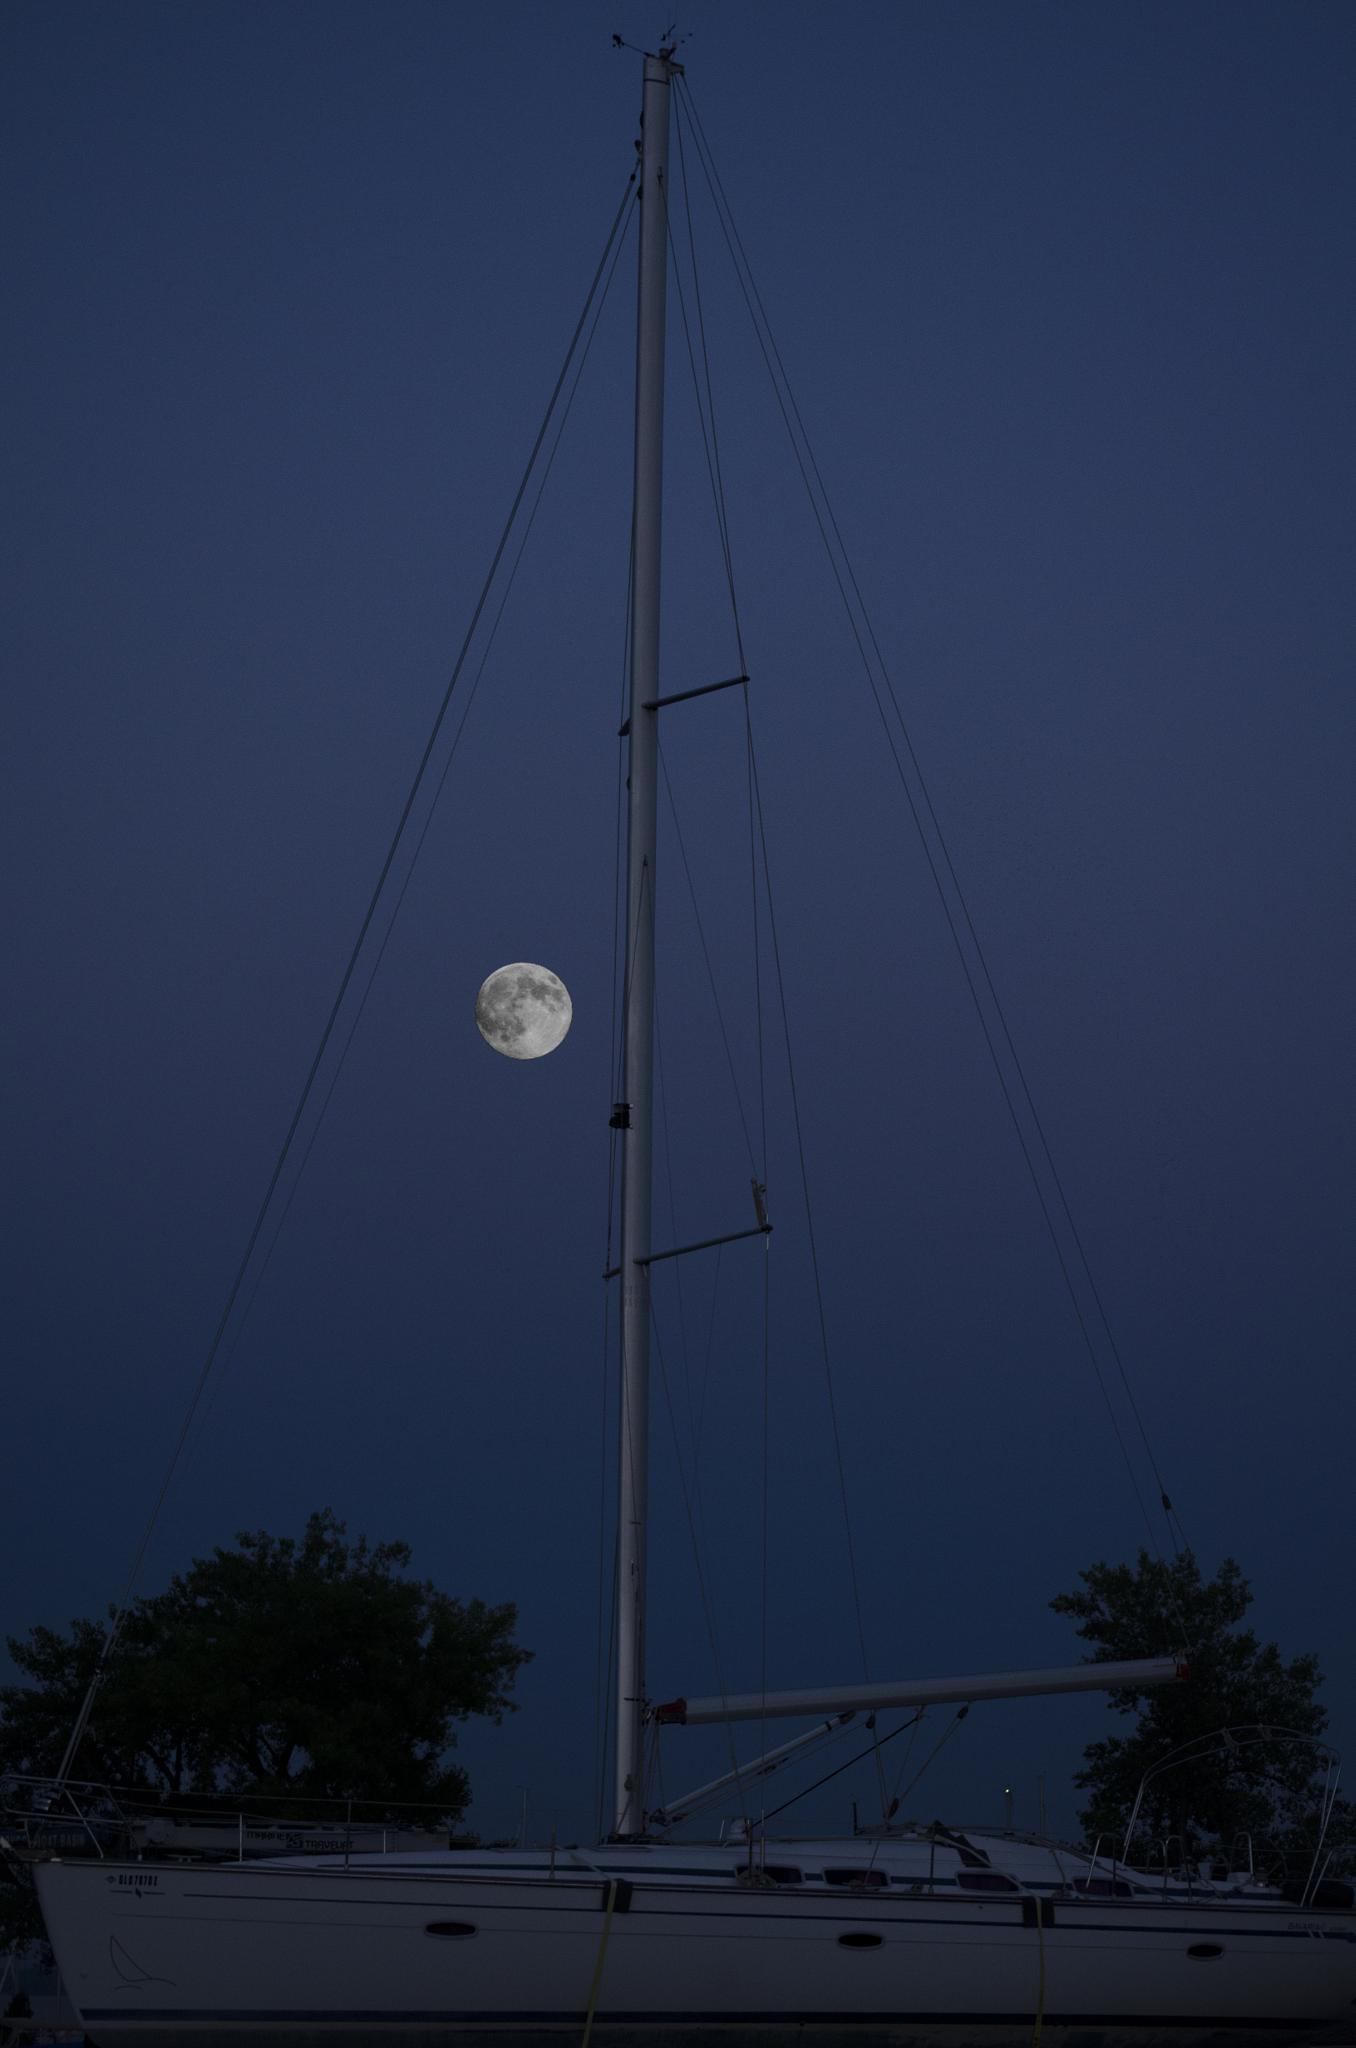 moon and sail boat by Michael Carter